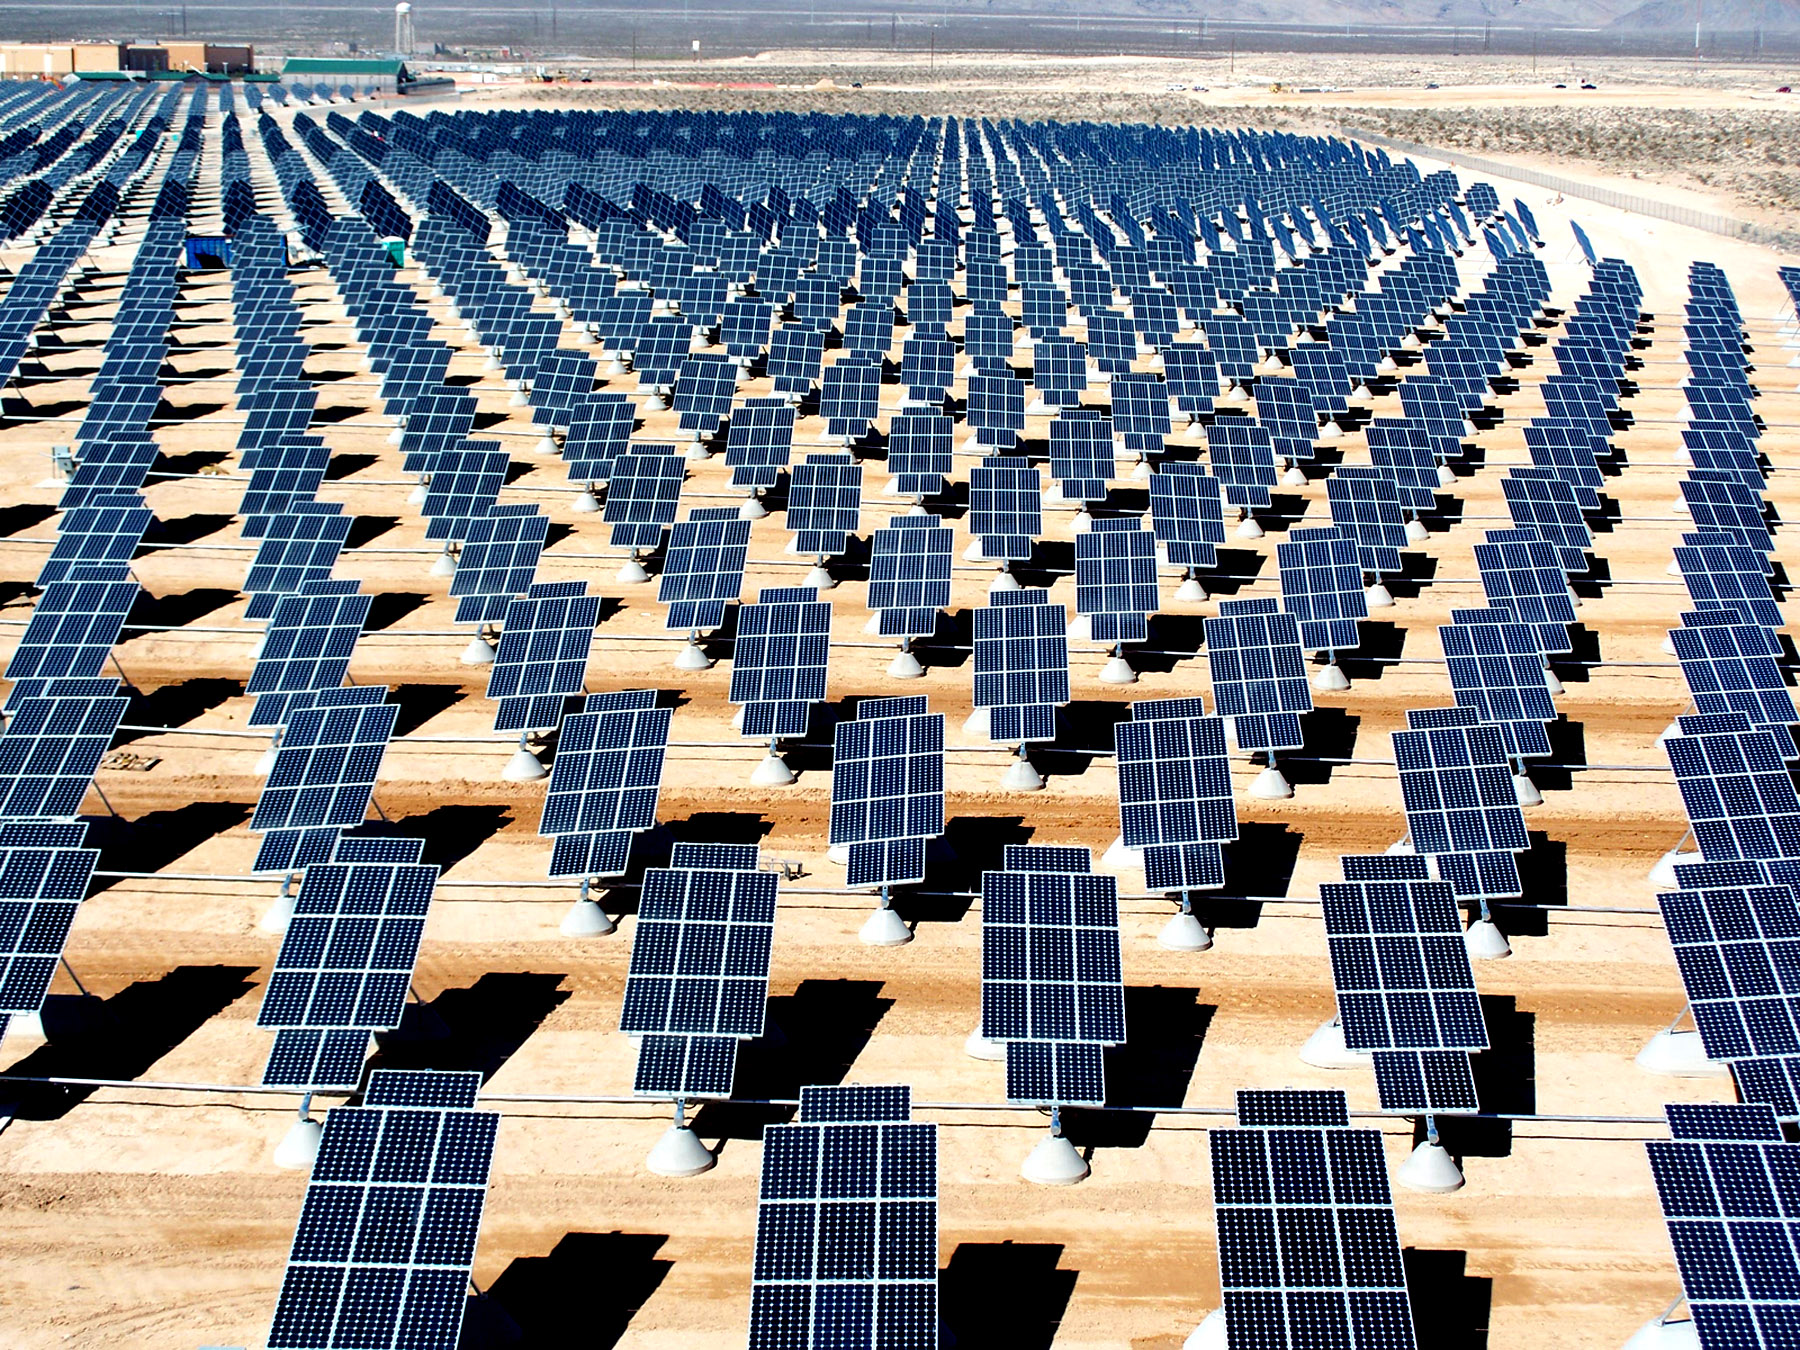 http://upload.wikimedia.org/wikipedia/commons/4/45/Giant_photovoltaic_array.jpg